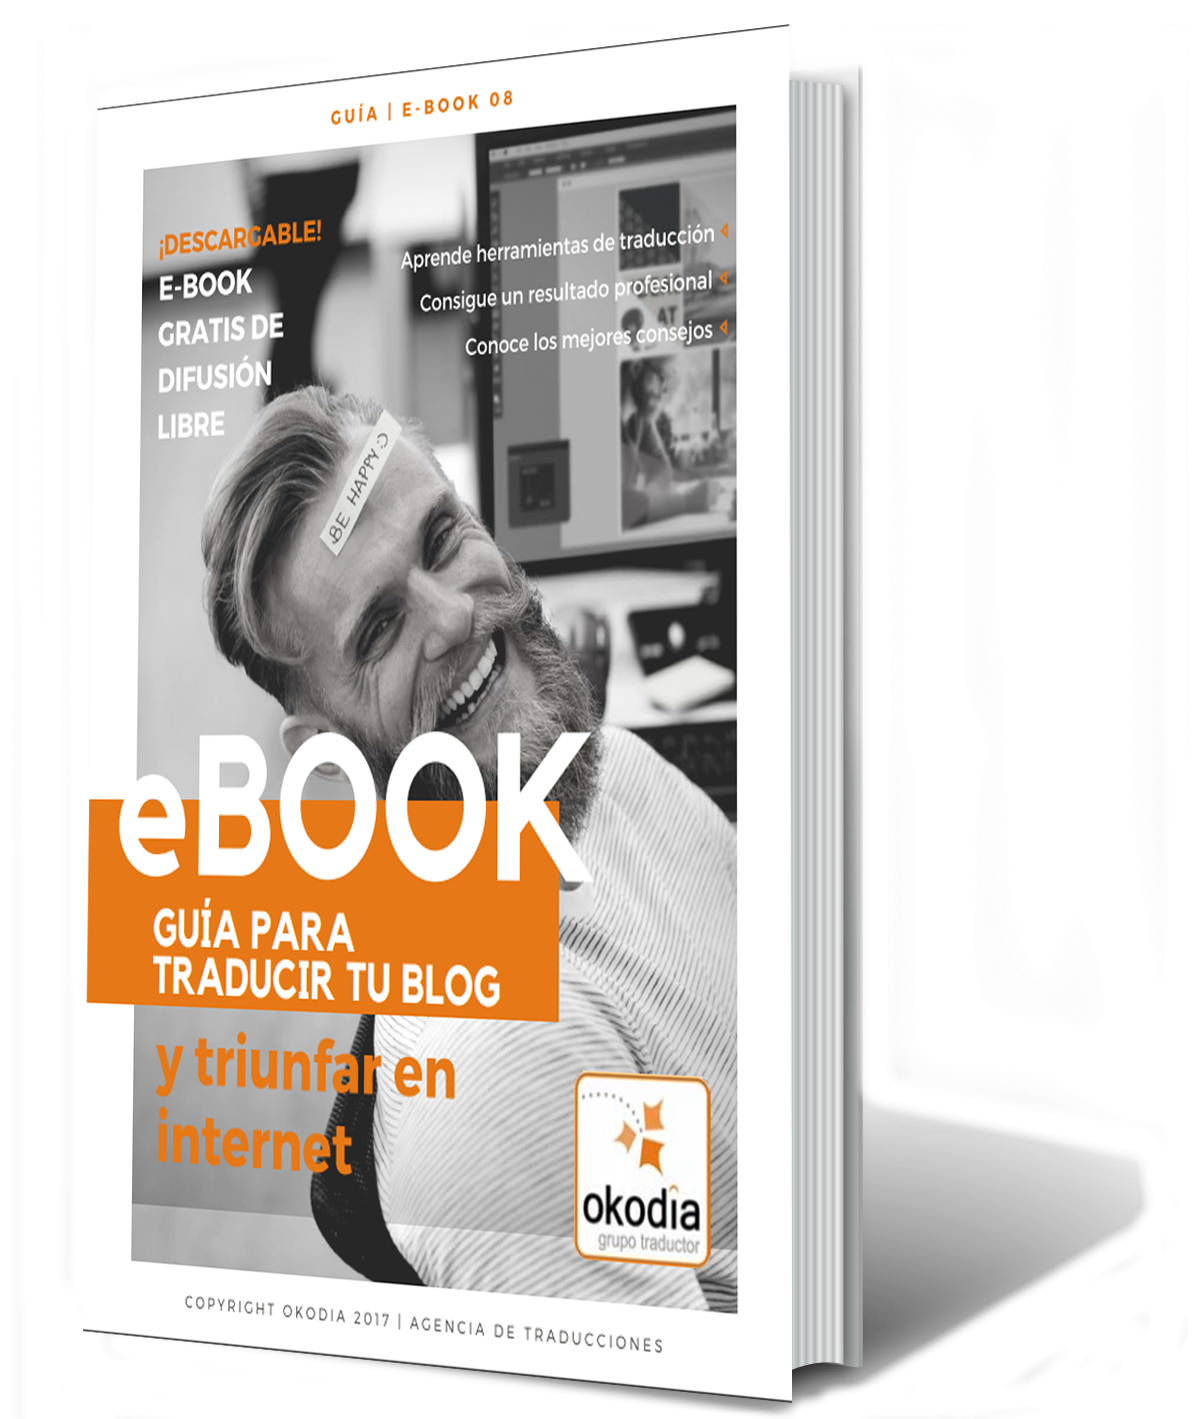 ebook8 guia traducir blog